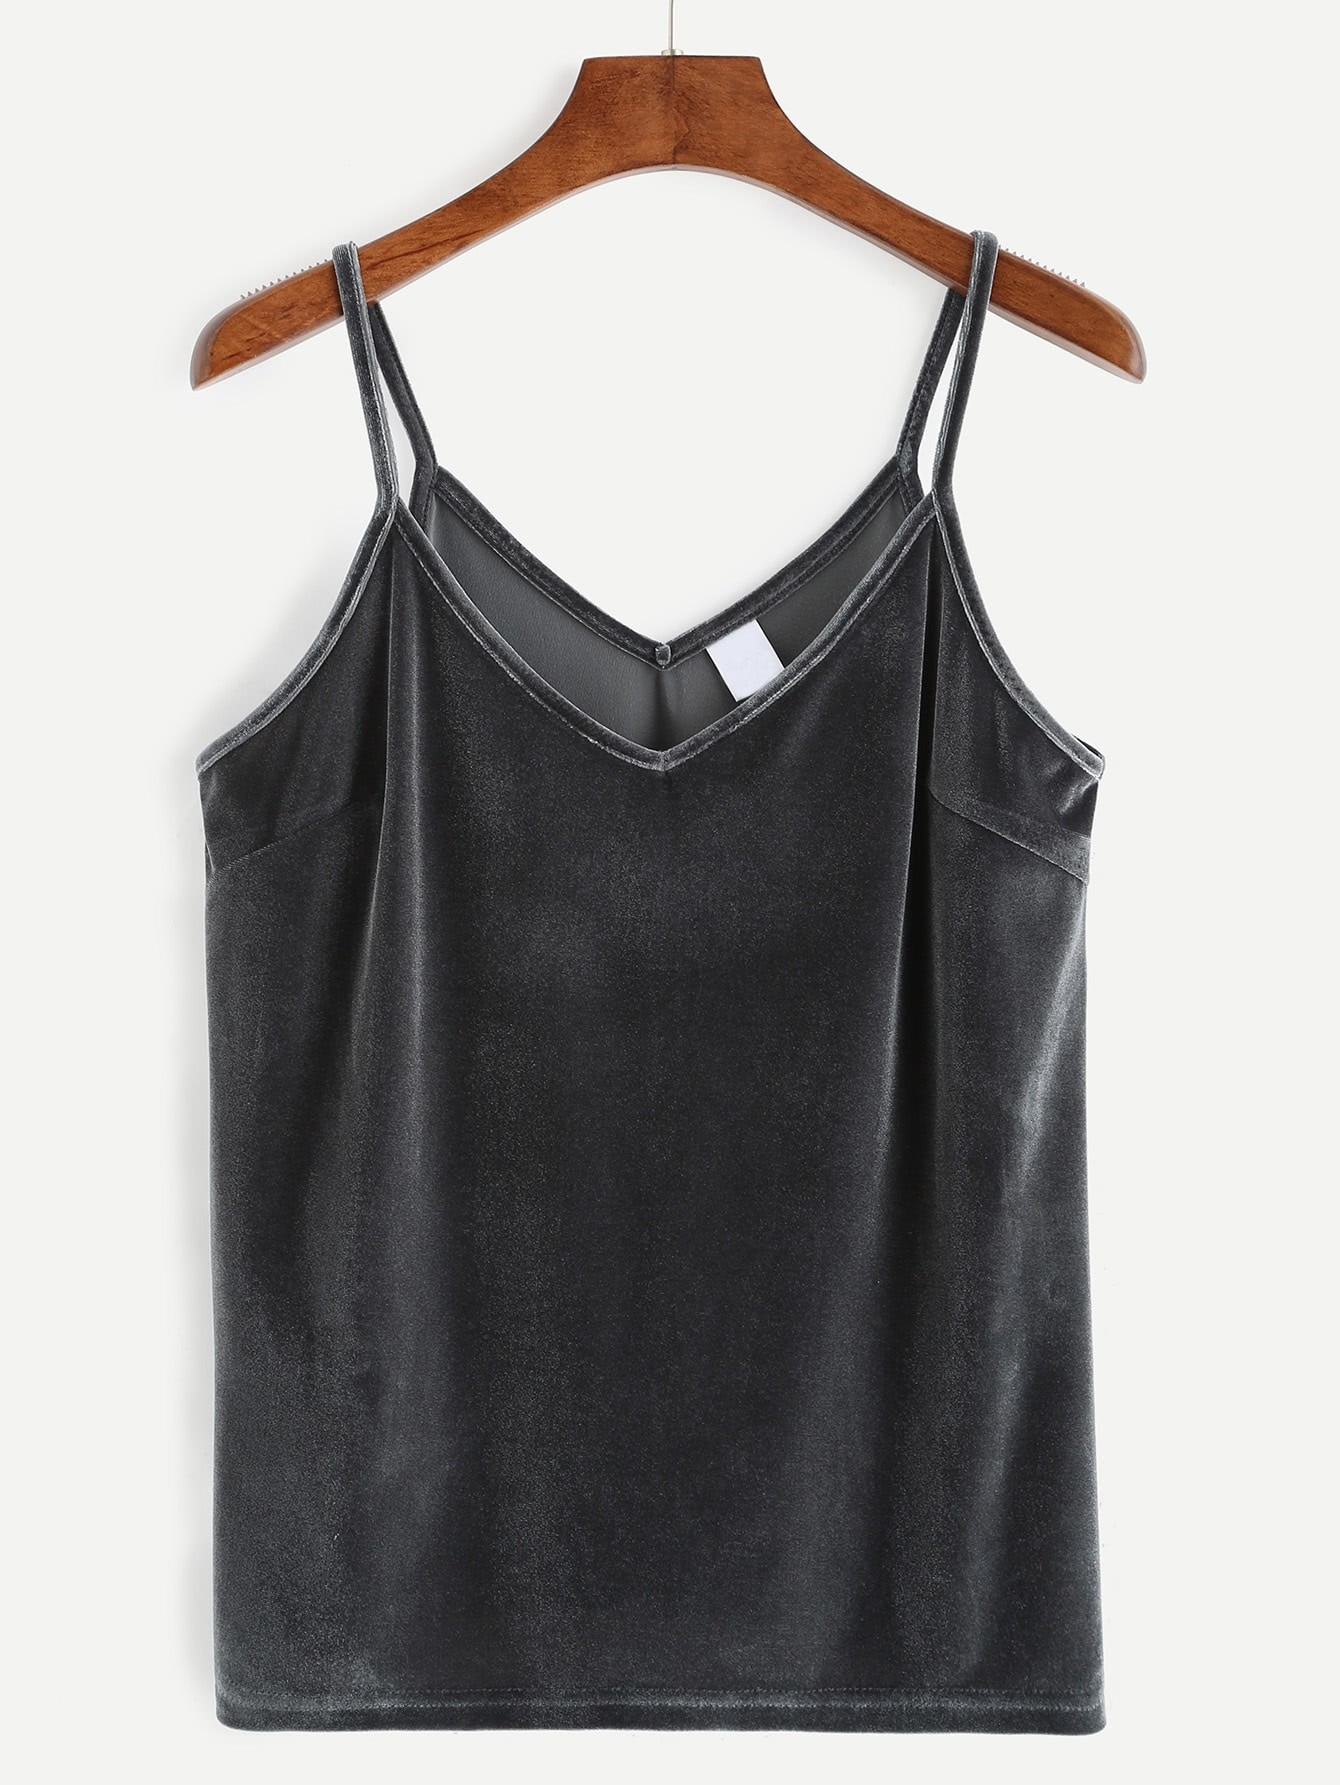 81eb96a8f2 Shein Review - my experience with choosing clothes on shein.com